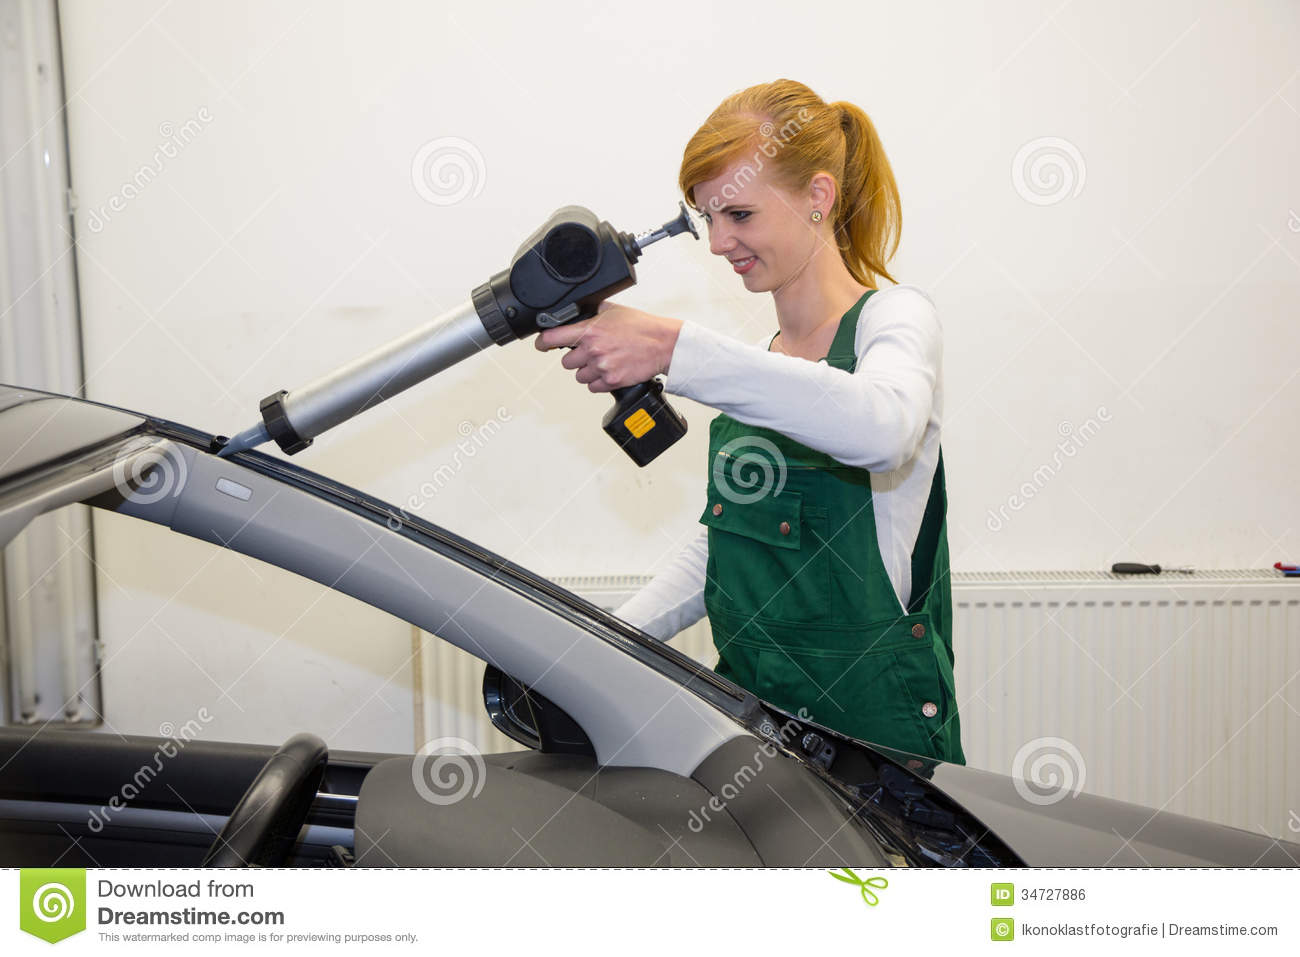 Windshield replacement business plan